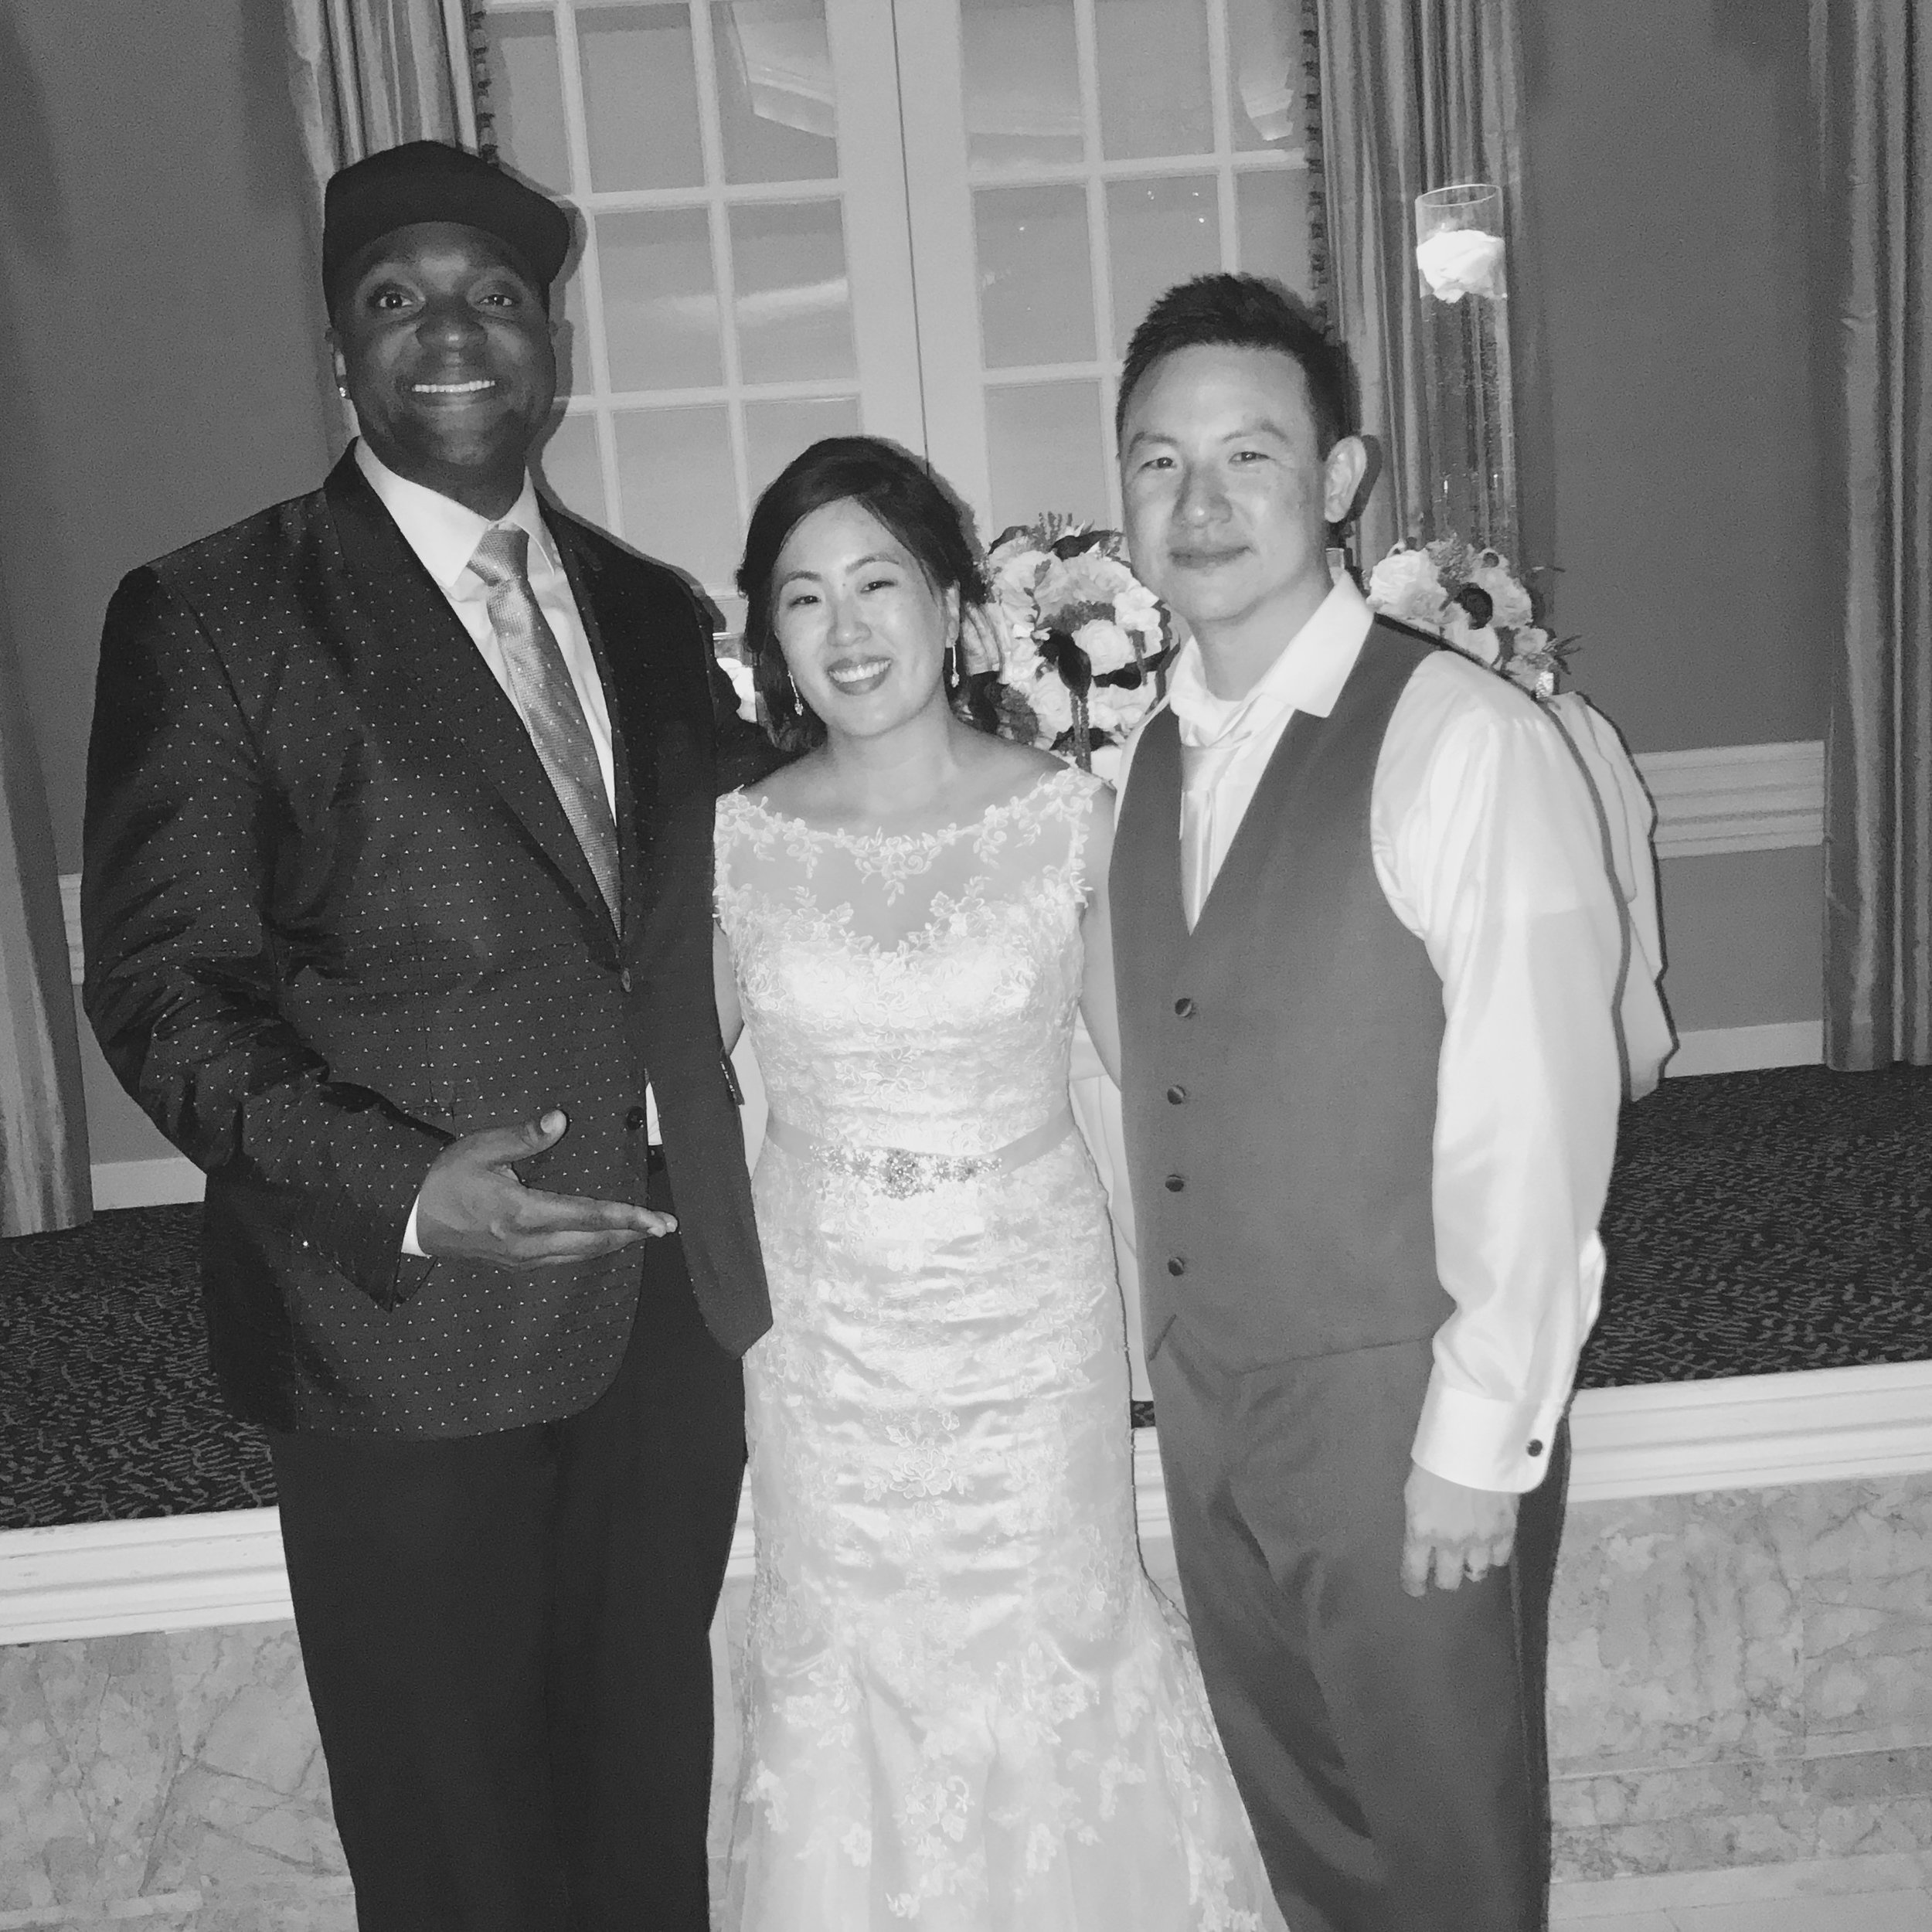 Hahm Choi Wedding by dj d jones cotillion banquets Palatine.jpg